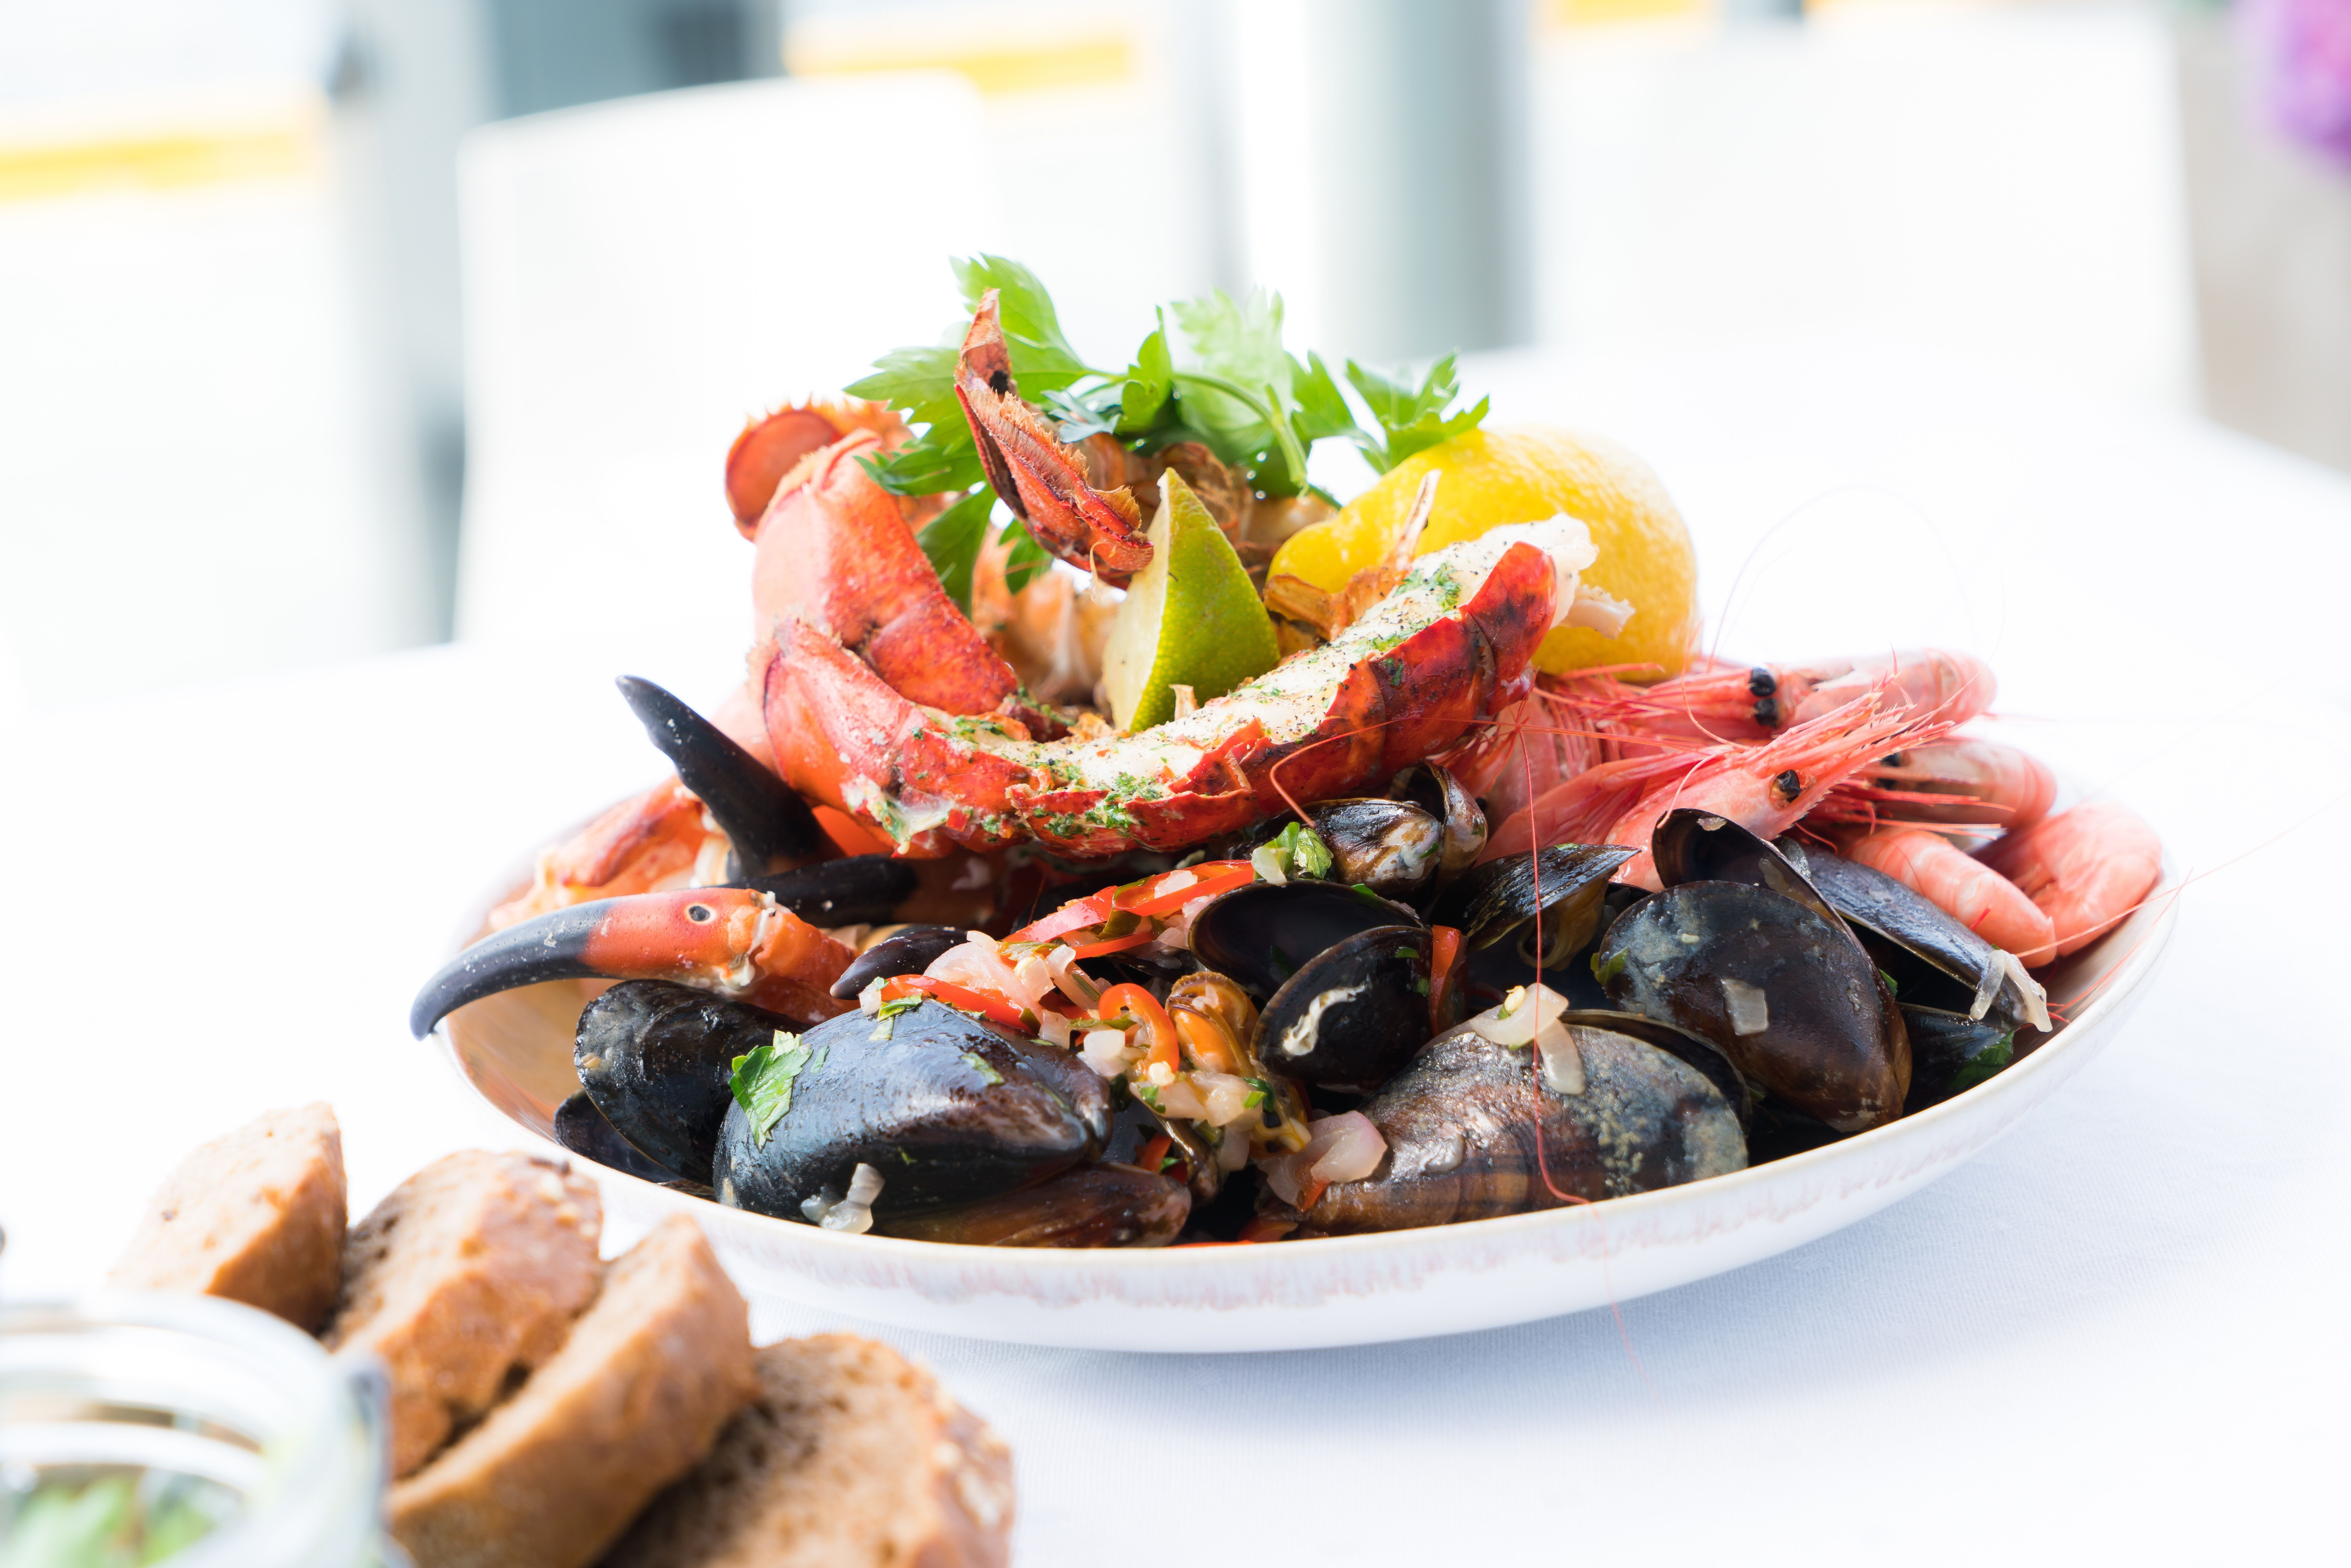 Do You Know The Top Places To Dine In Adelaide We Have Selected